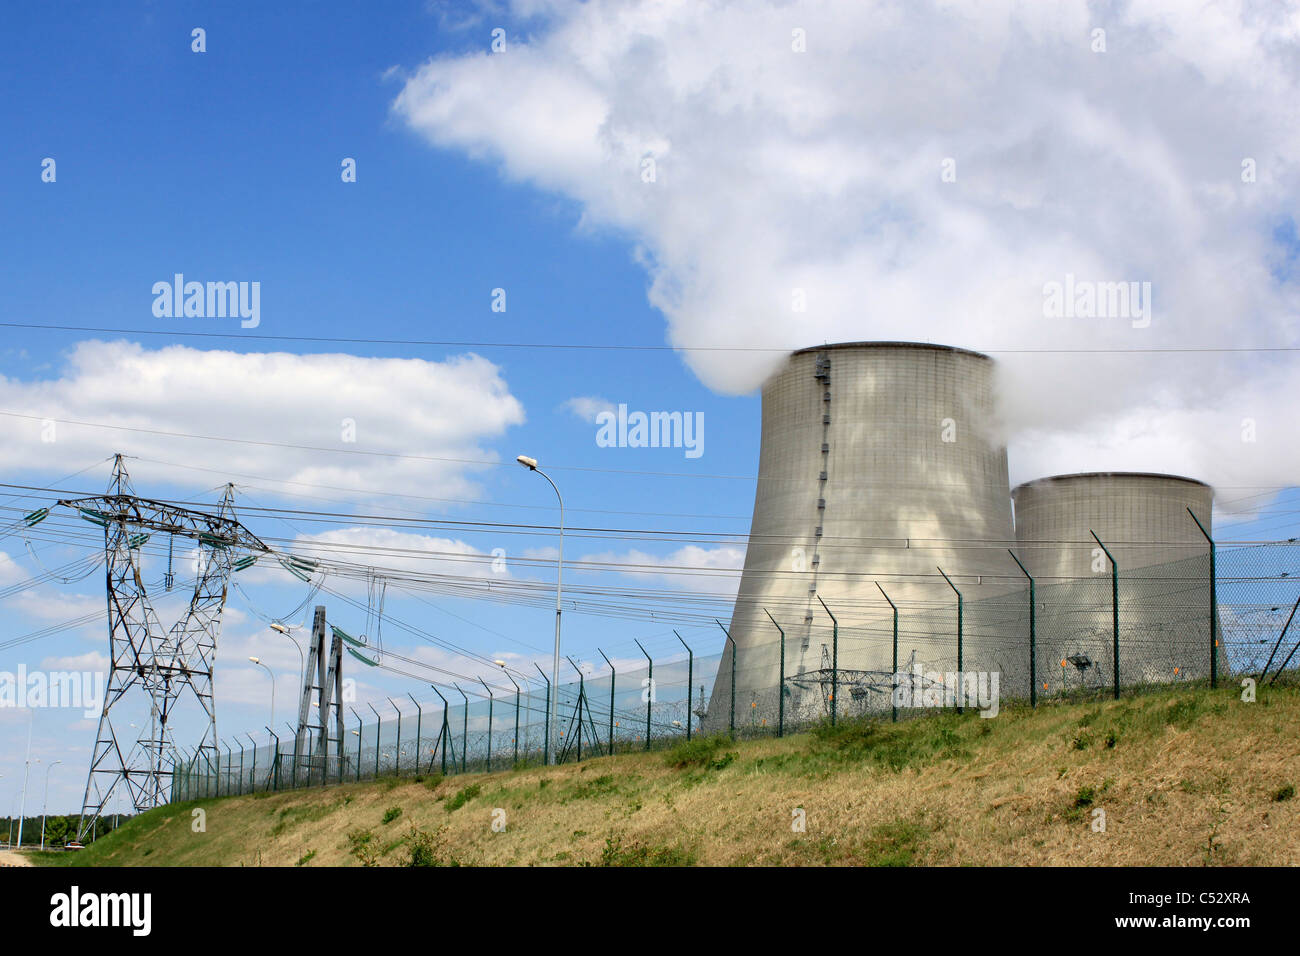 nuclear power plant in operation for production of electrical energy - Stock Image